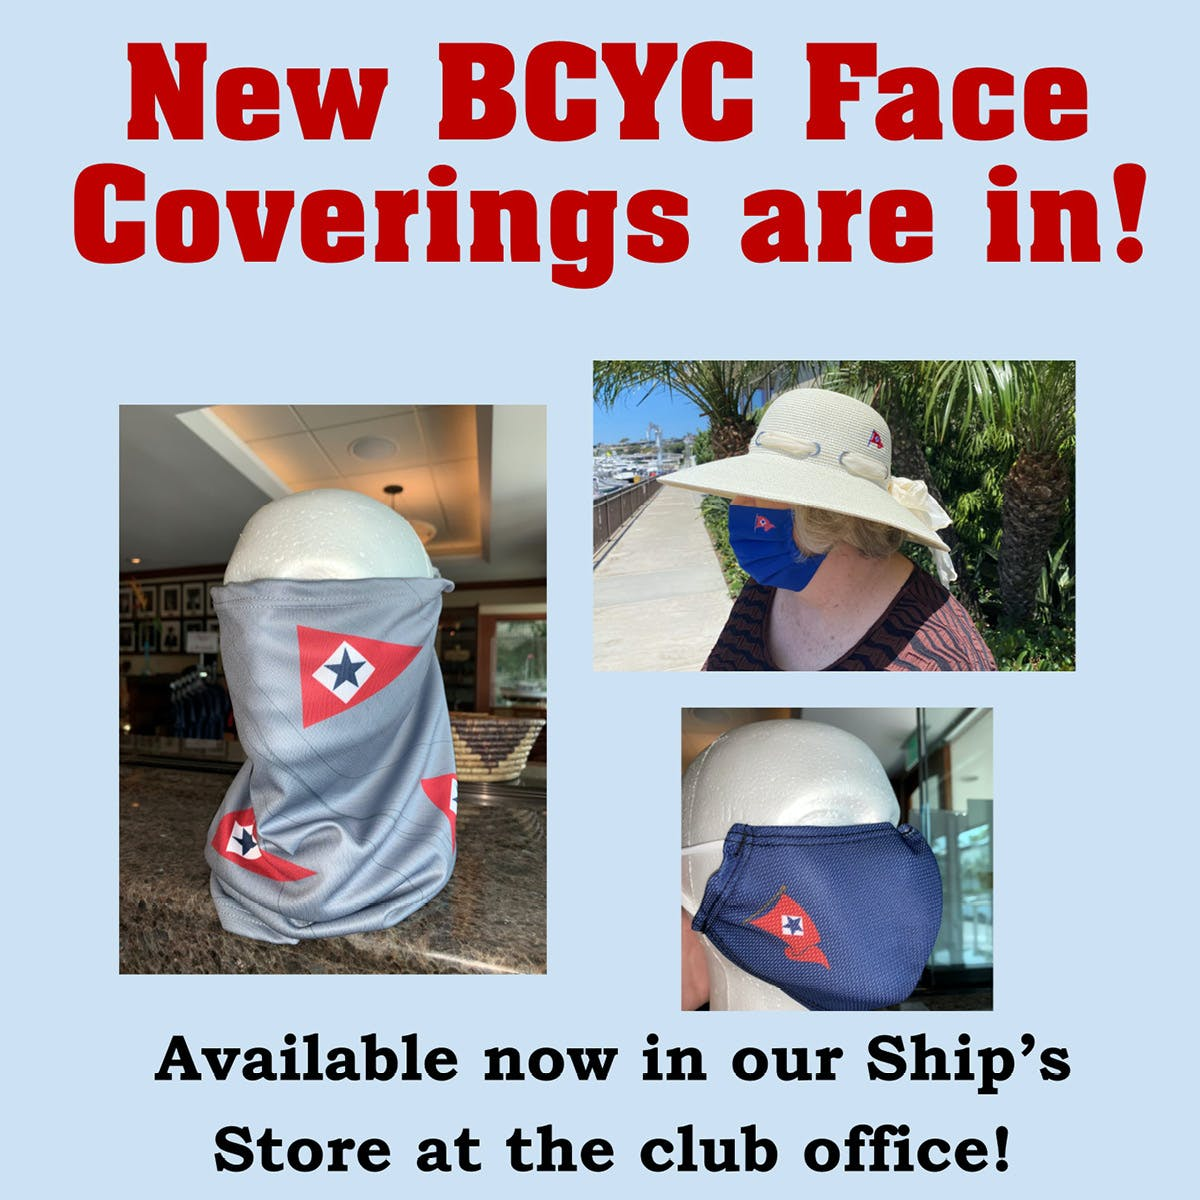 BCYC NEW Face Coverings